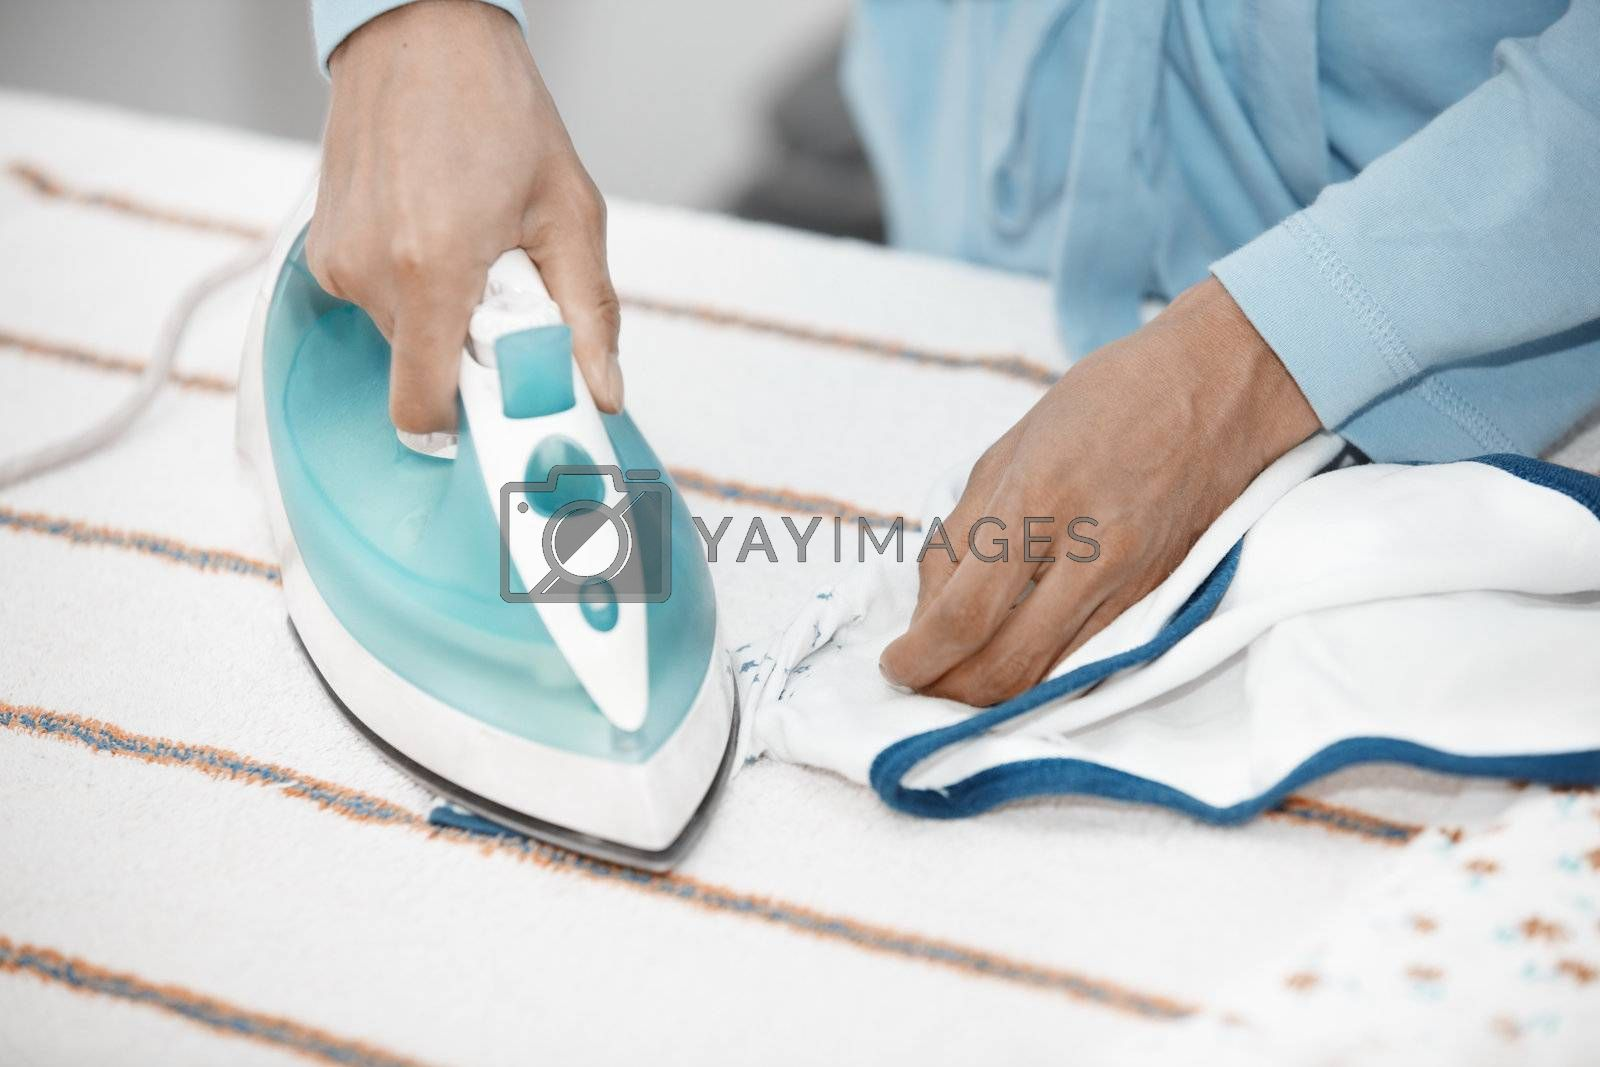 Hands of human doing housework with iron